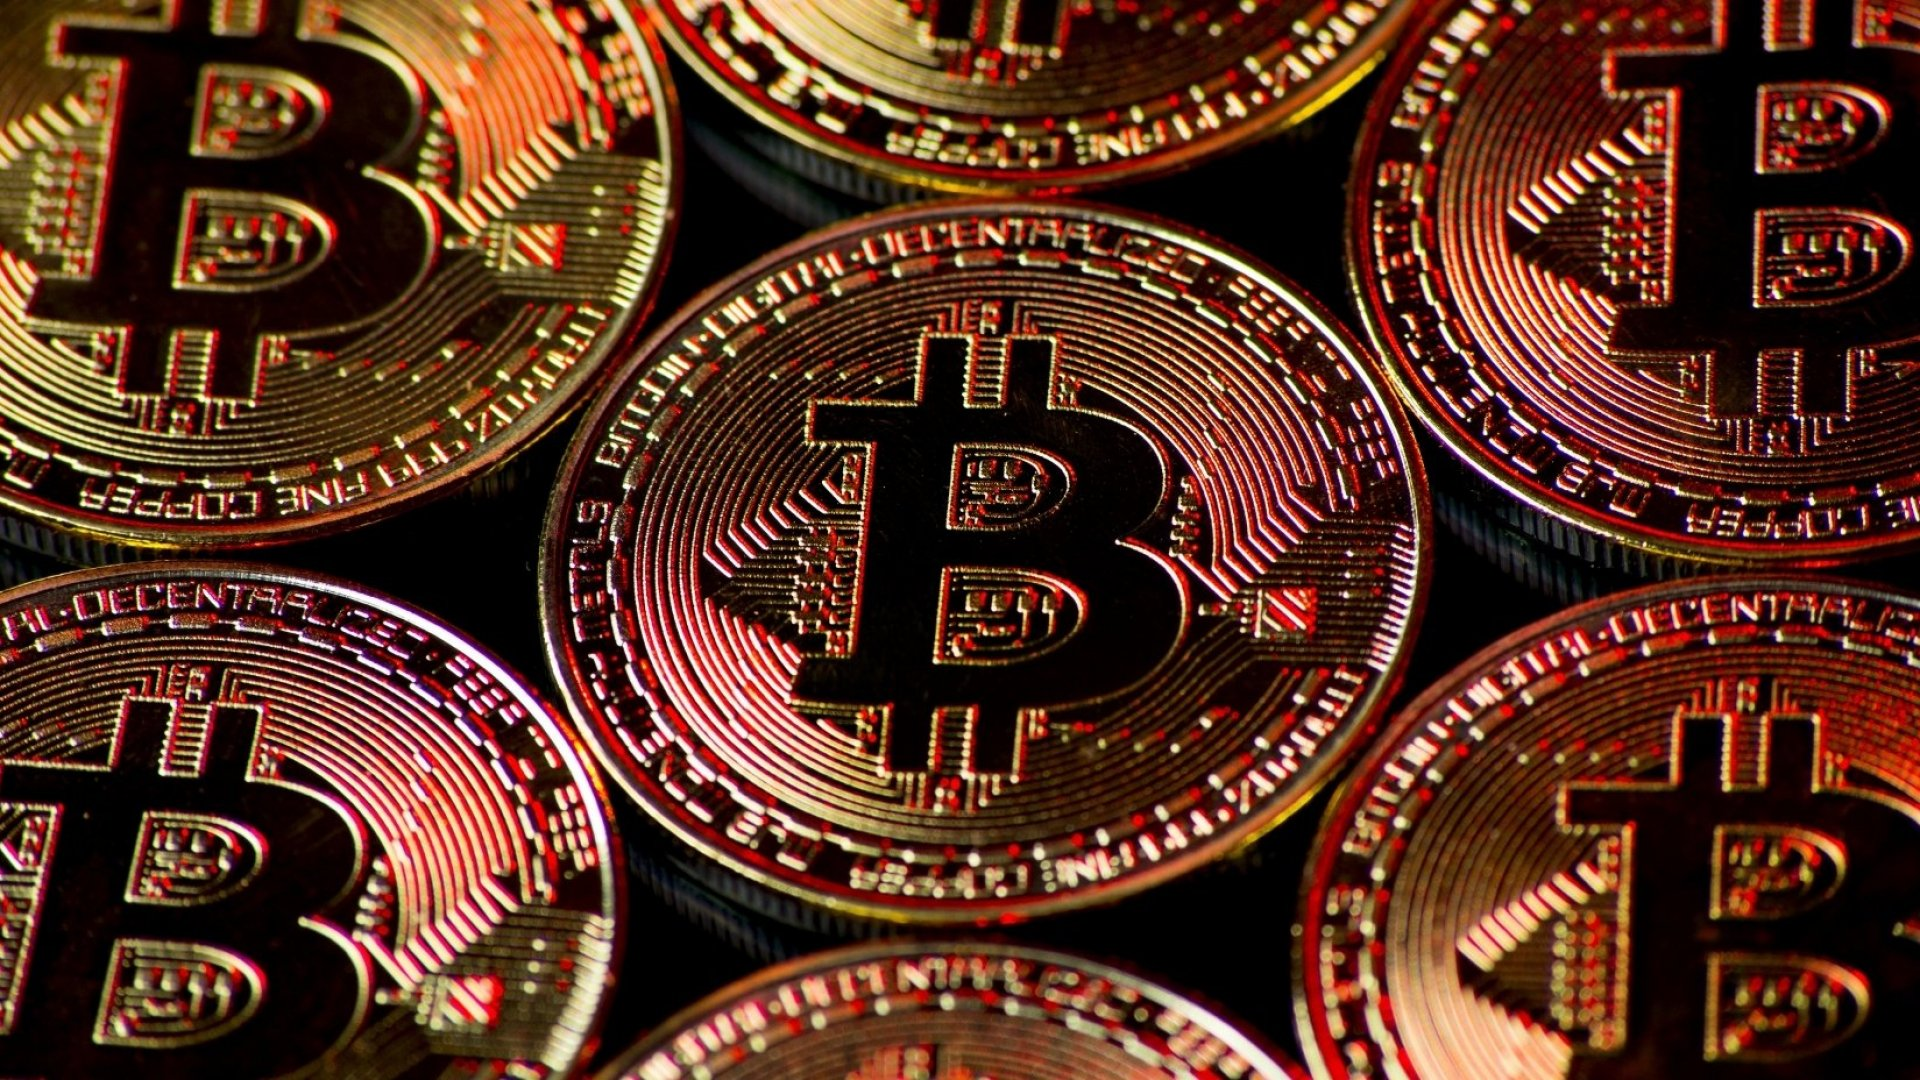 Cryptocurrency: Why Criminals Are Now Focusing Their Attacks on Bitcoin, ICOs, And Many Alt-Cryptos